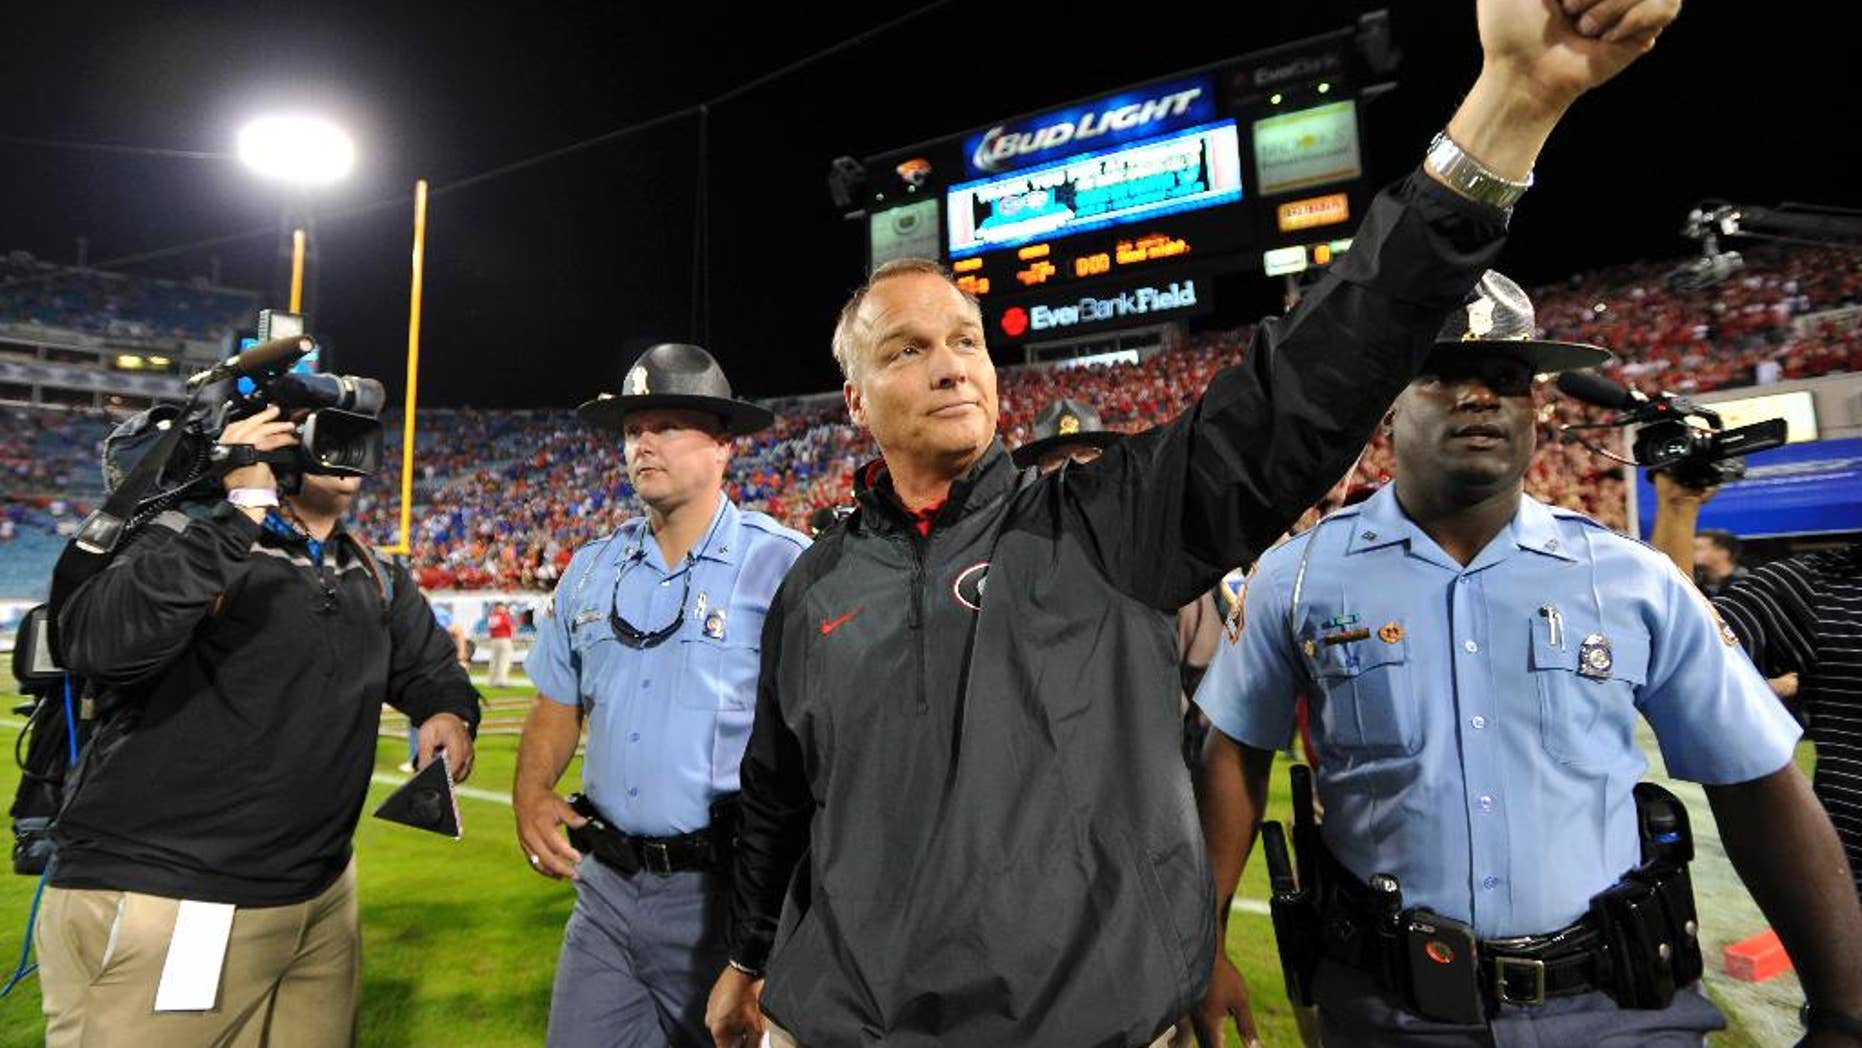 FILE - In this Nov. 2, 2013, file photo, Georgia head coach Mark Richt gives a thumbs up to the fans after their 23-20 win over Florida in an NCAA football game in Jacksonville, Fla. On Saturday, Nov. 1, 2014, the Bulldogs will be going for their fourth straight victory in the series for the first time since the 1980s. (AP Photo/Athens Banner-Herald, AJ Reynolds, File) MAGS OUT; MANDATORY CREDIT